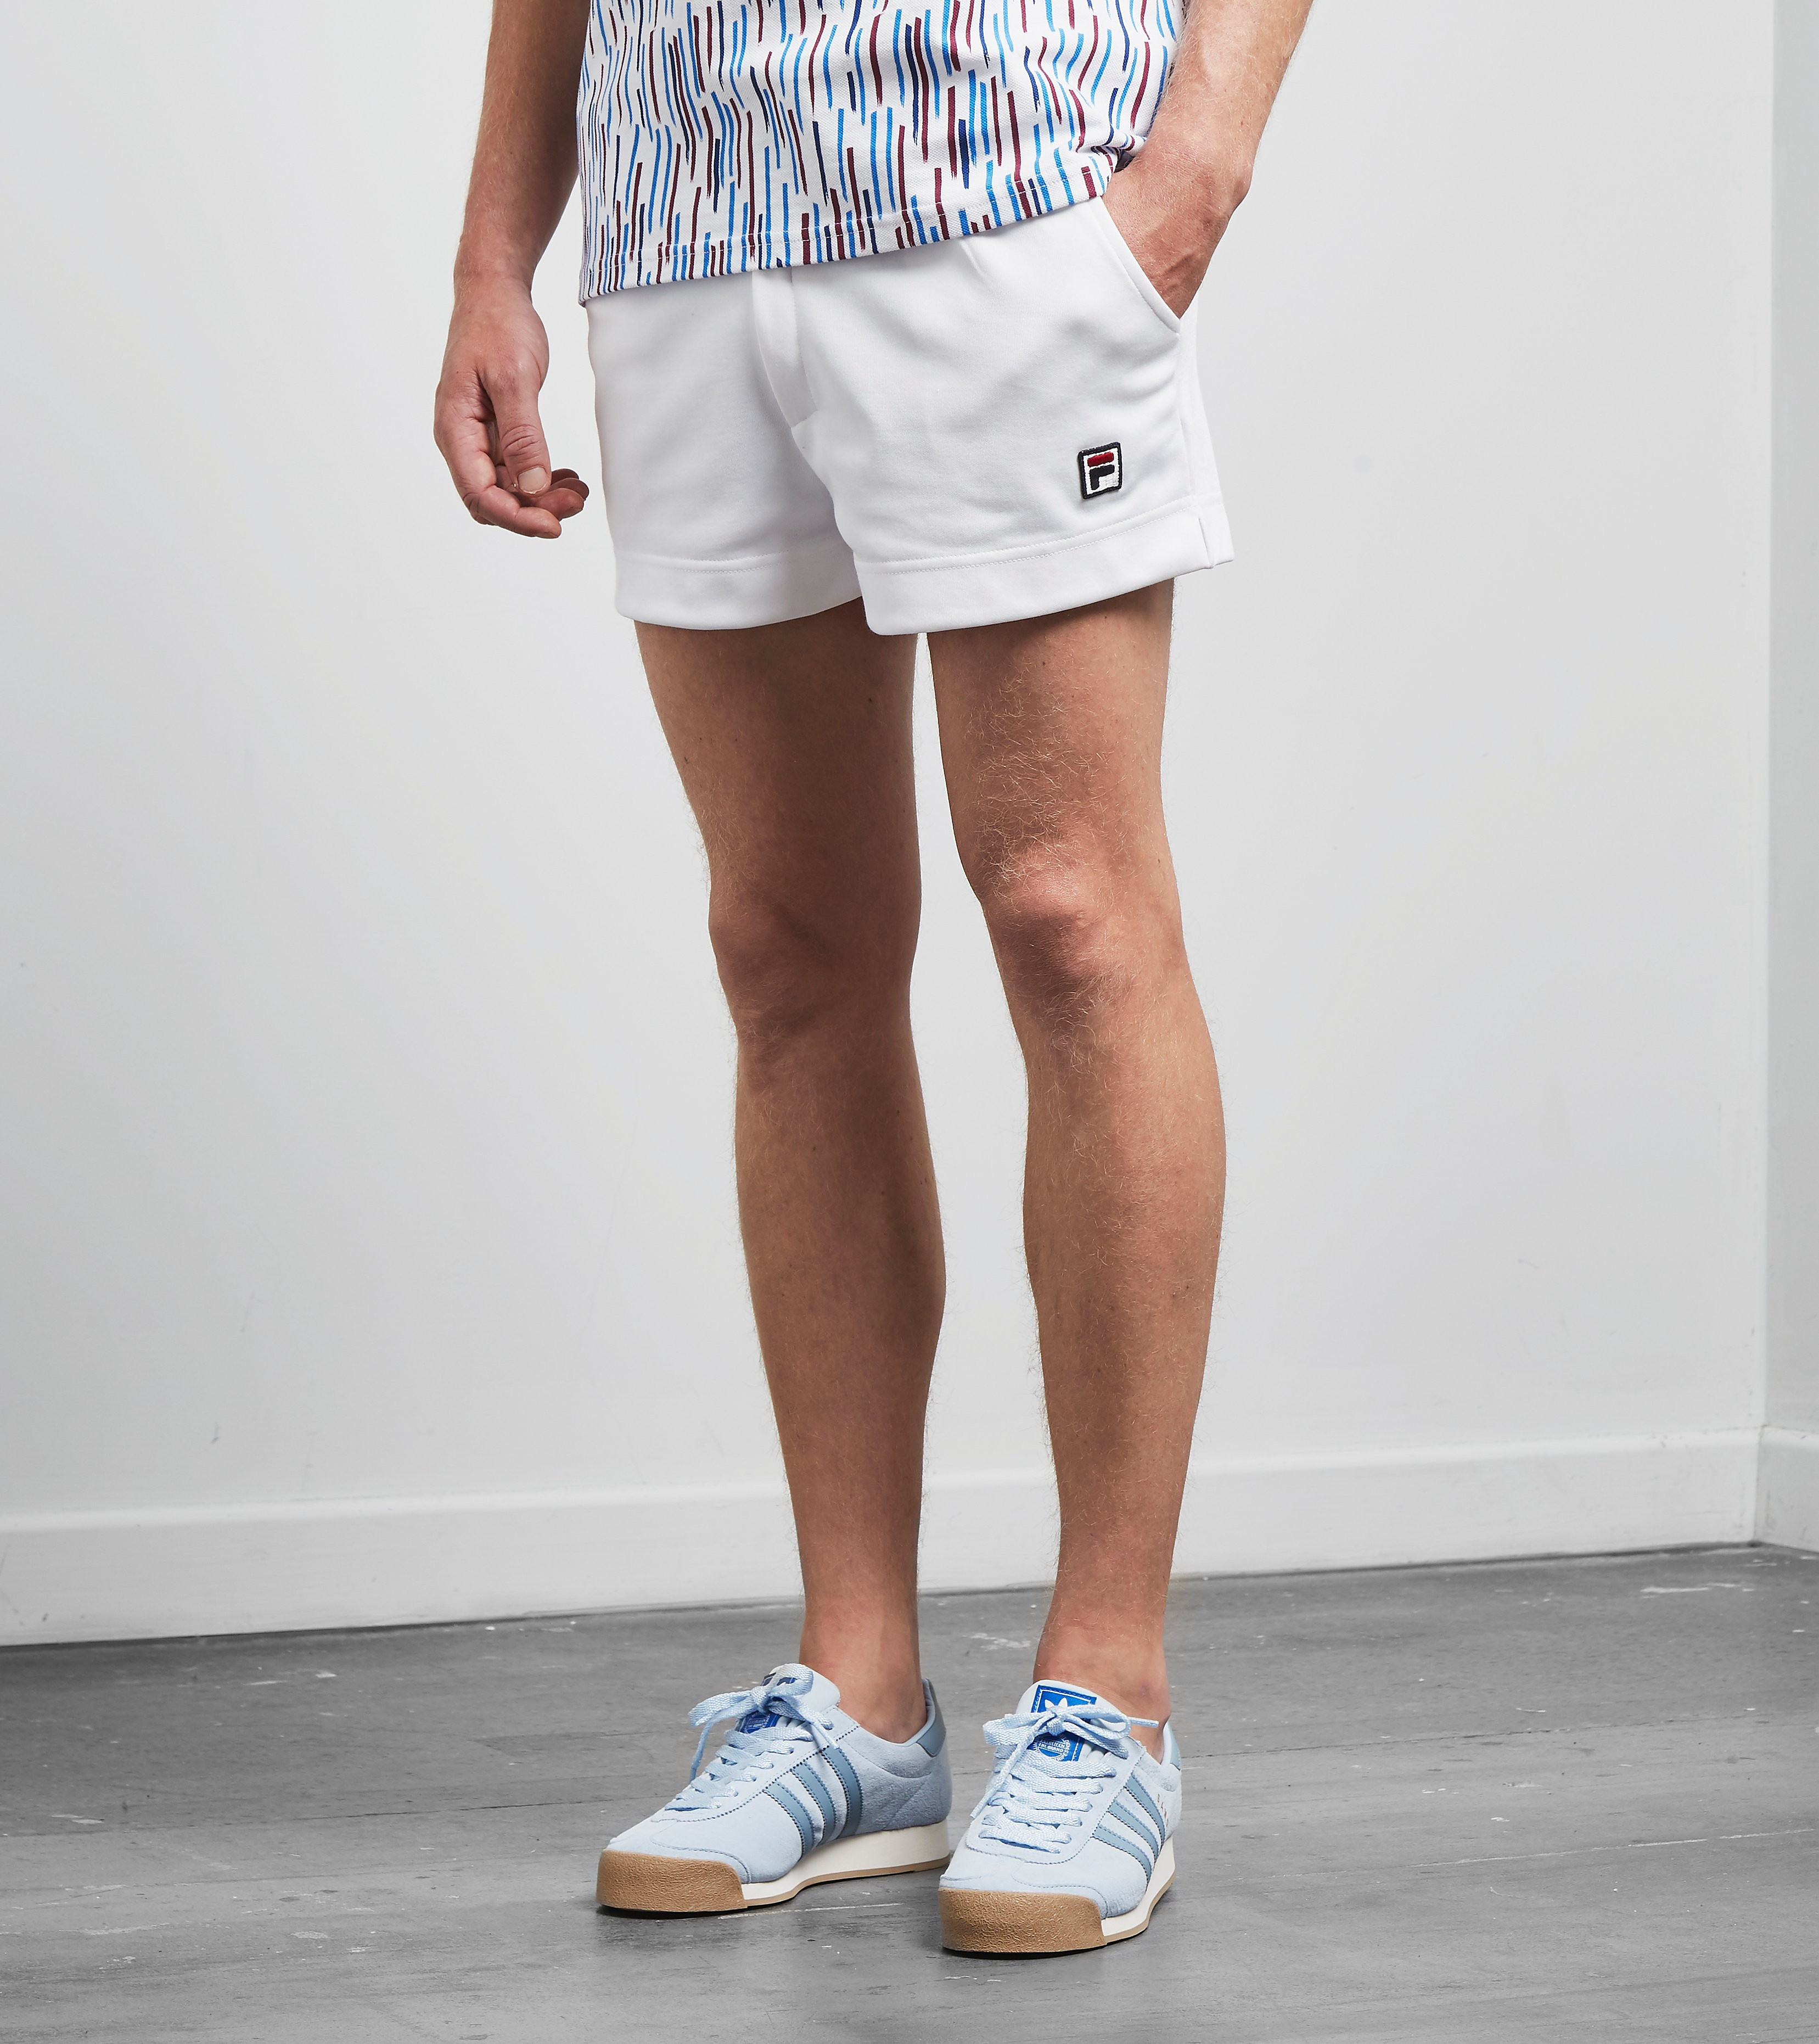 Fila Jolla Shorts - size? Exclusive